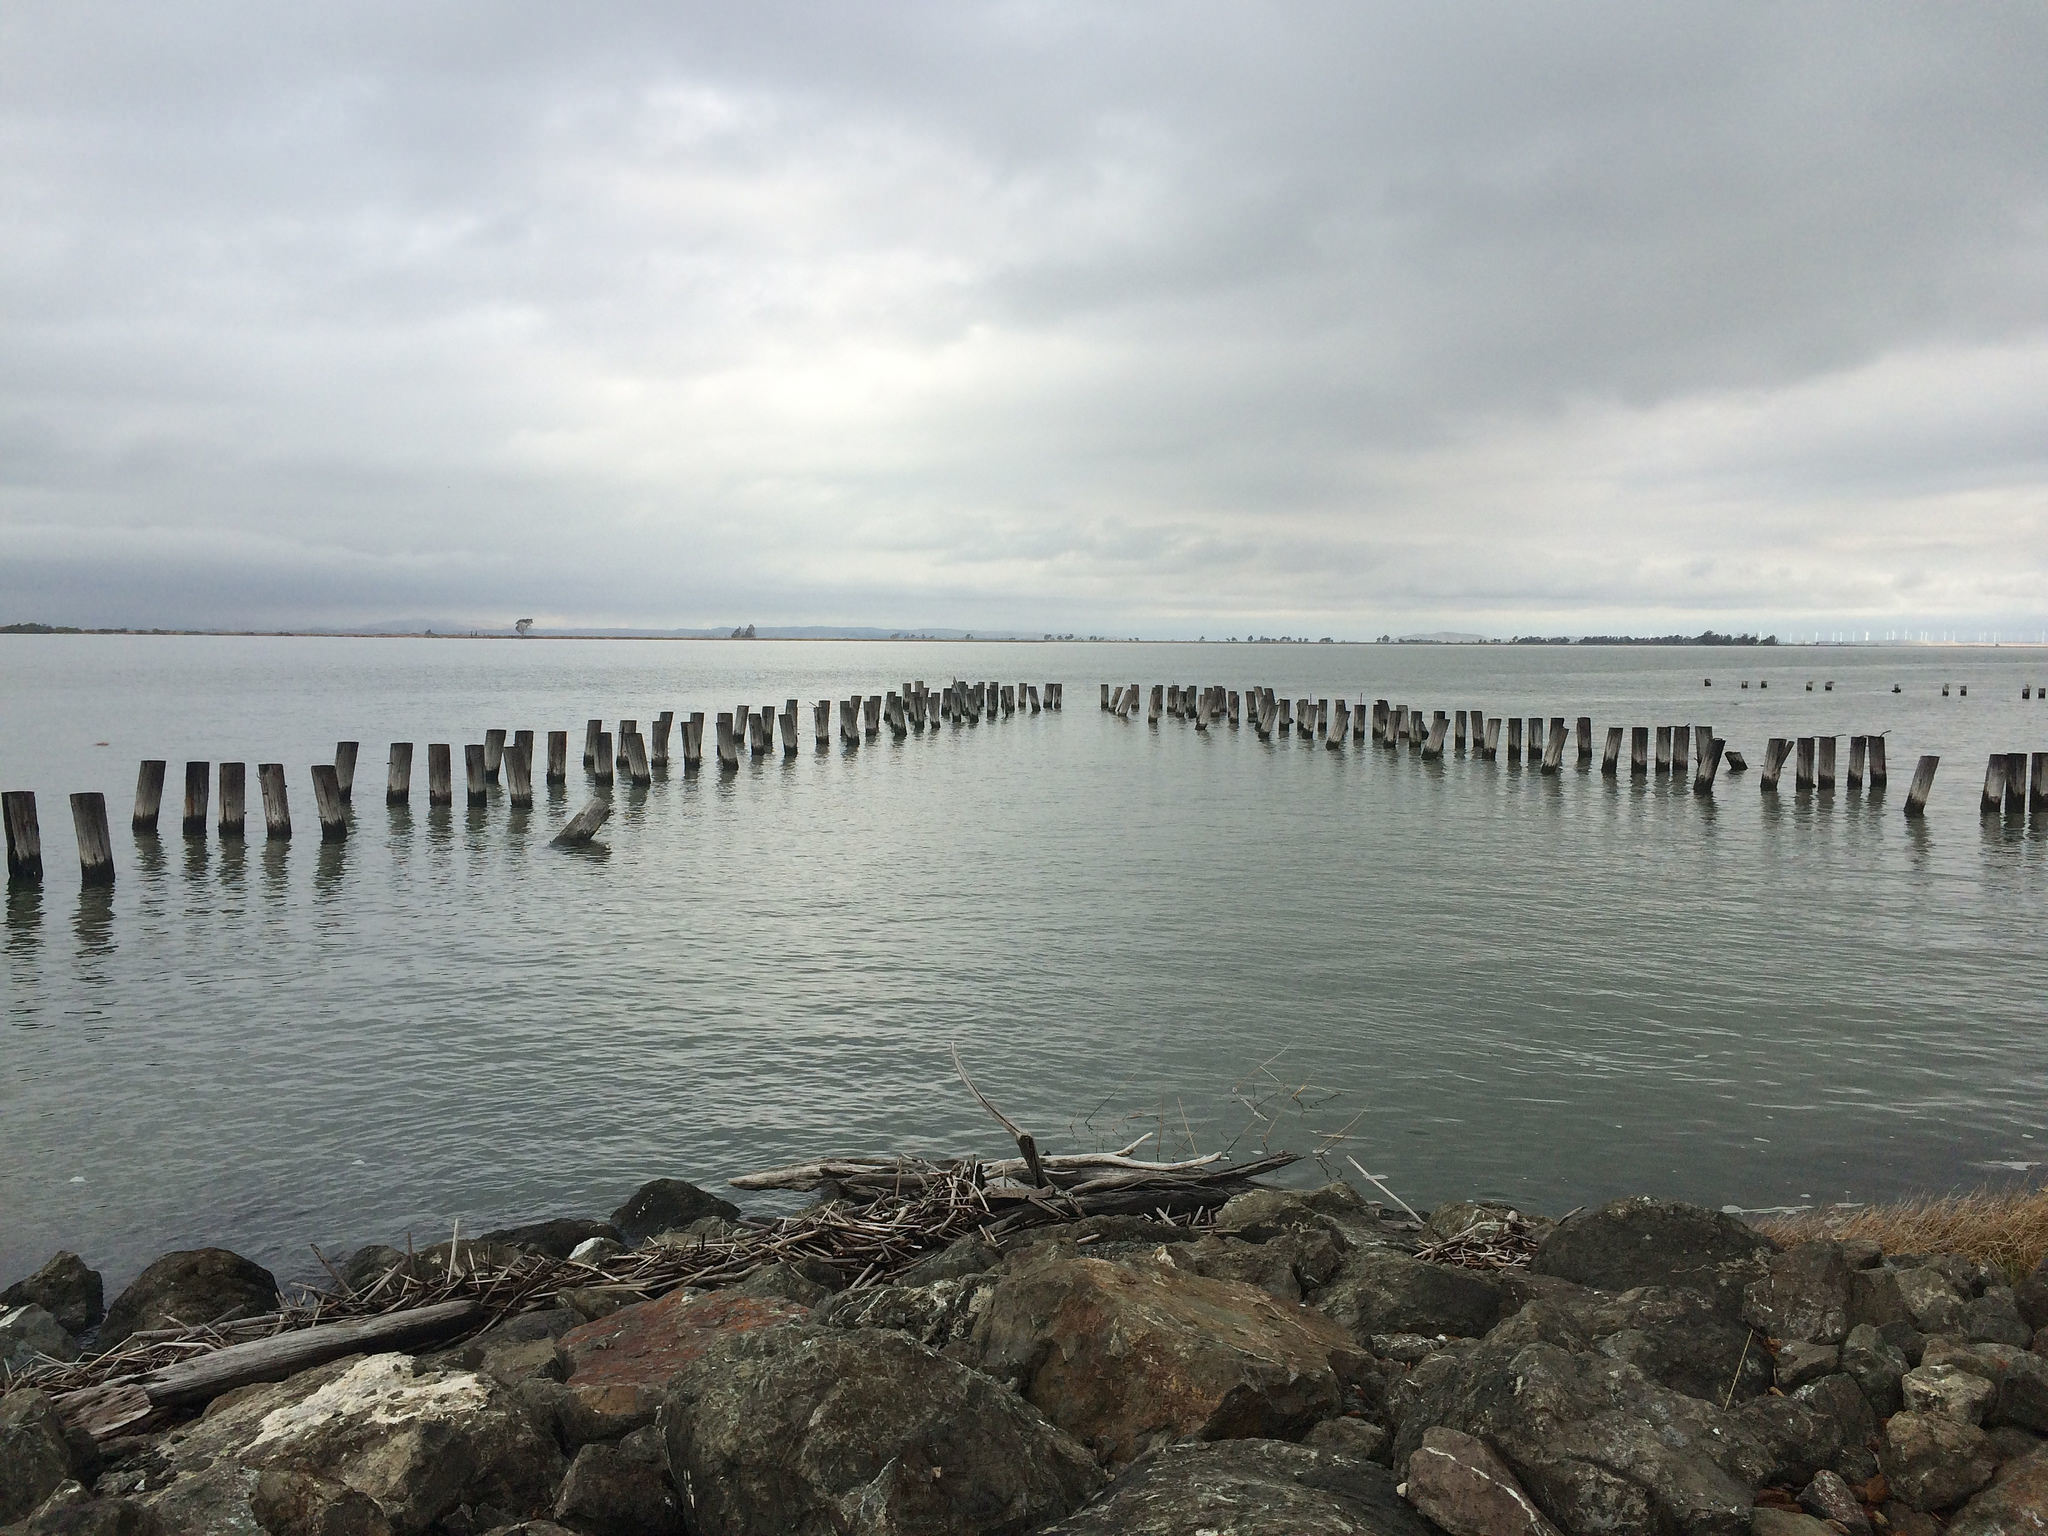 A view of what remains of the World War II-era pier at Port Chicago, where 320 men, mostly African American, lost their lives in an explosion.